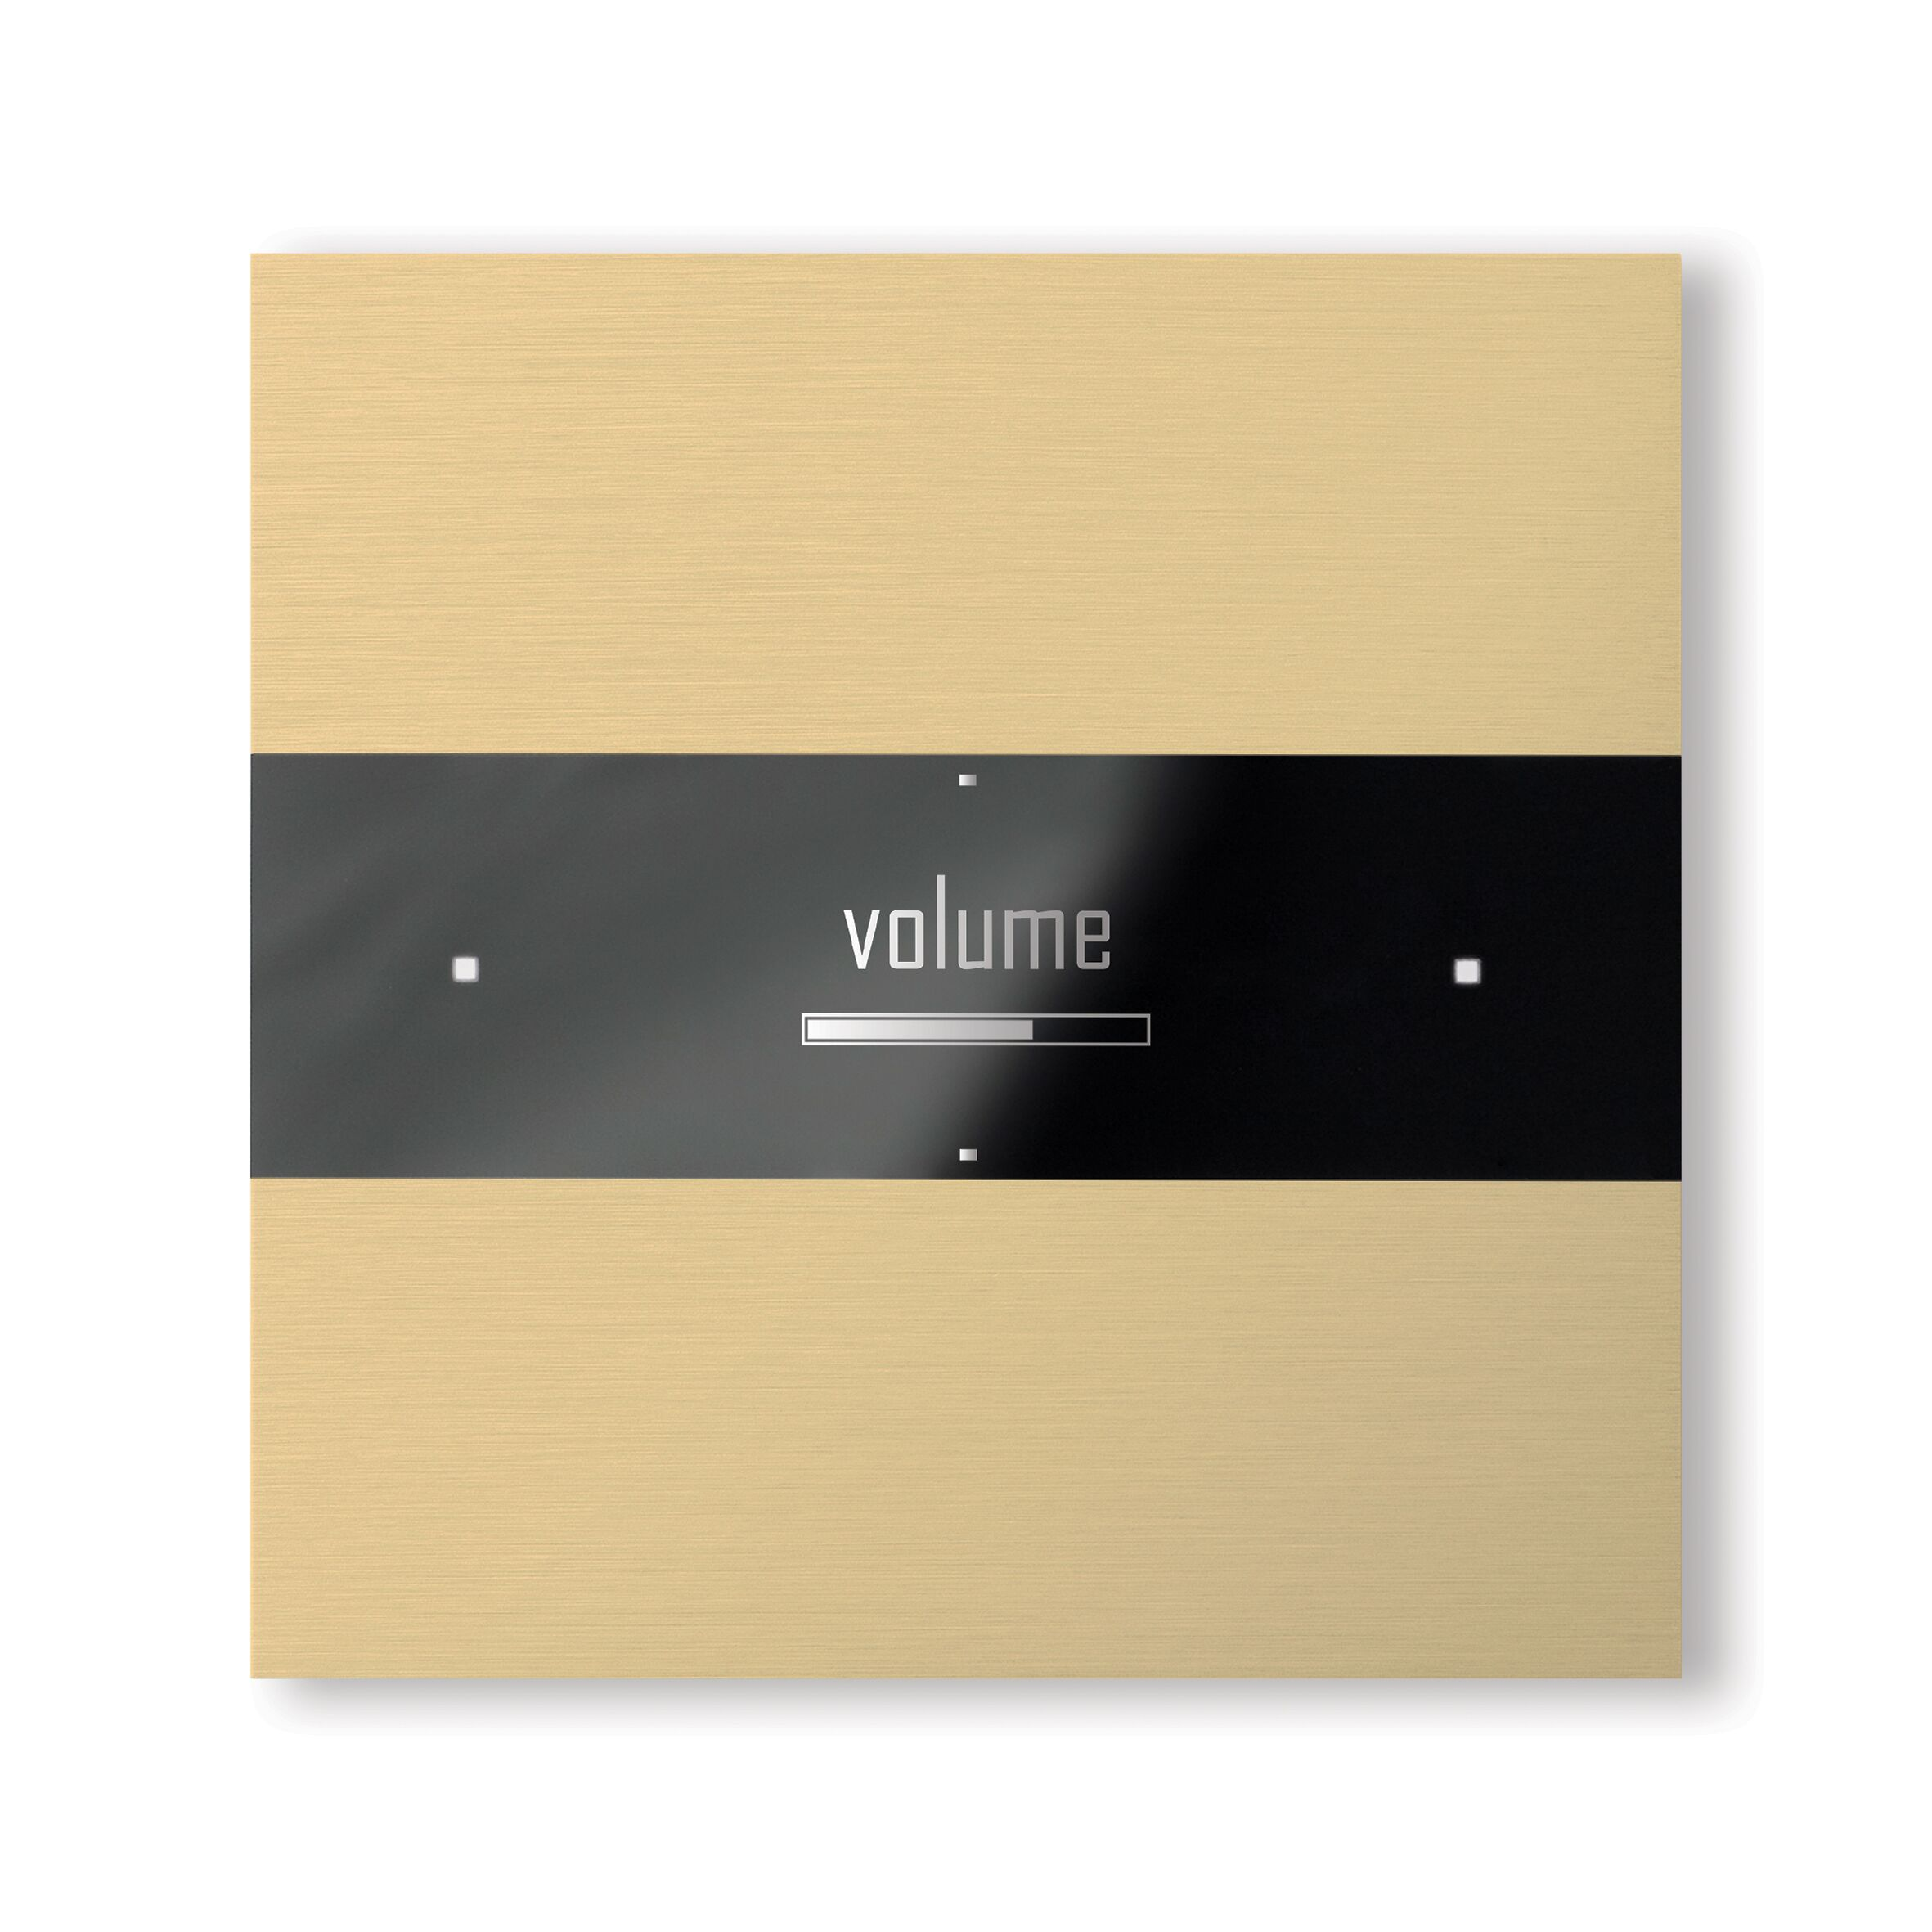 DESEO_301-08_brushed brass_FT_preview.jpeg